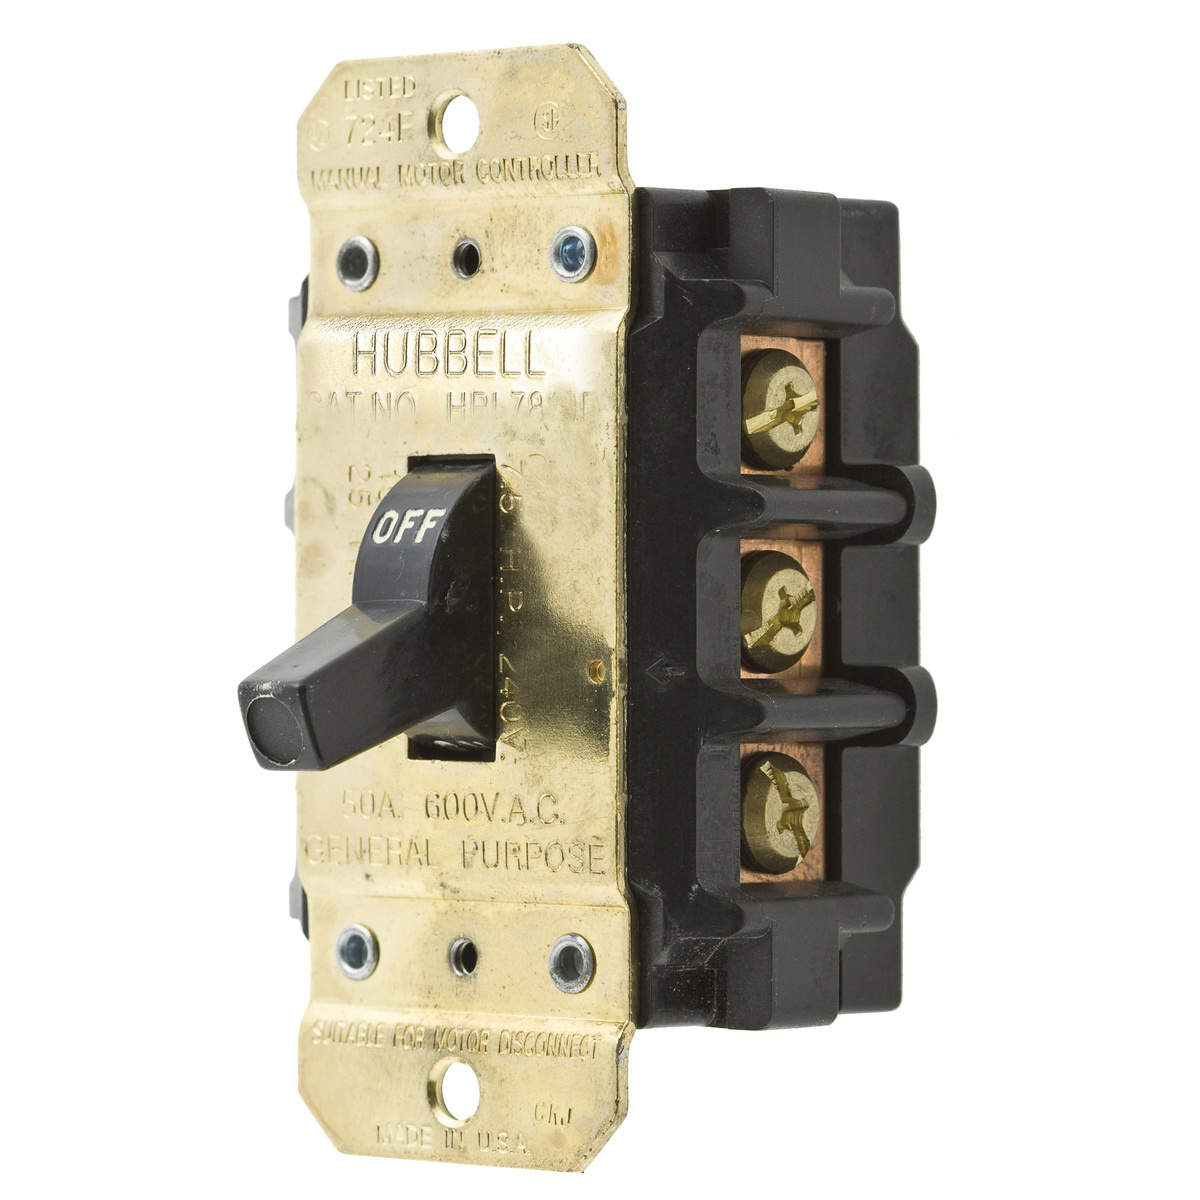 hight resolution of hubbell wiring hbl7853d 3 pole 3 phase toggle manual motor disconnect switch 600